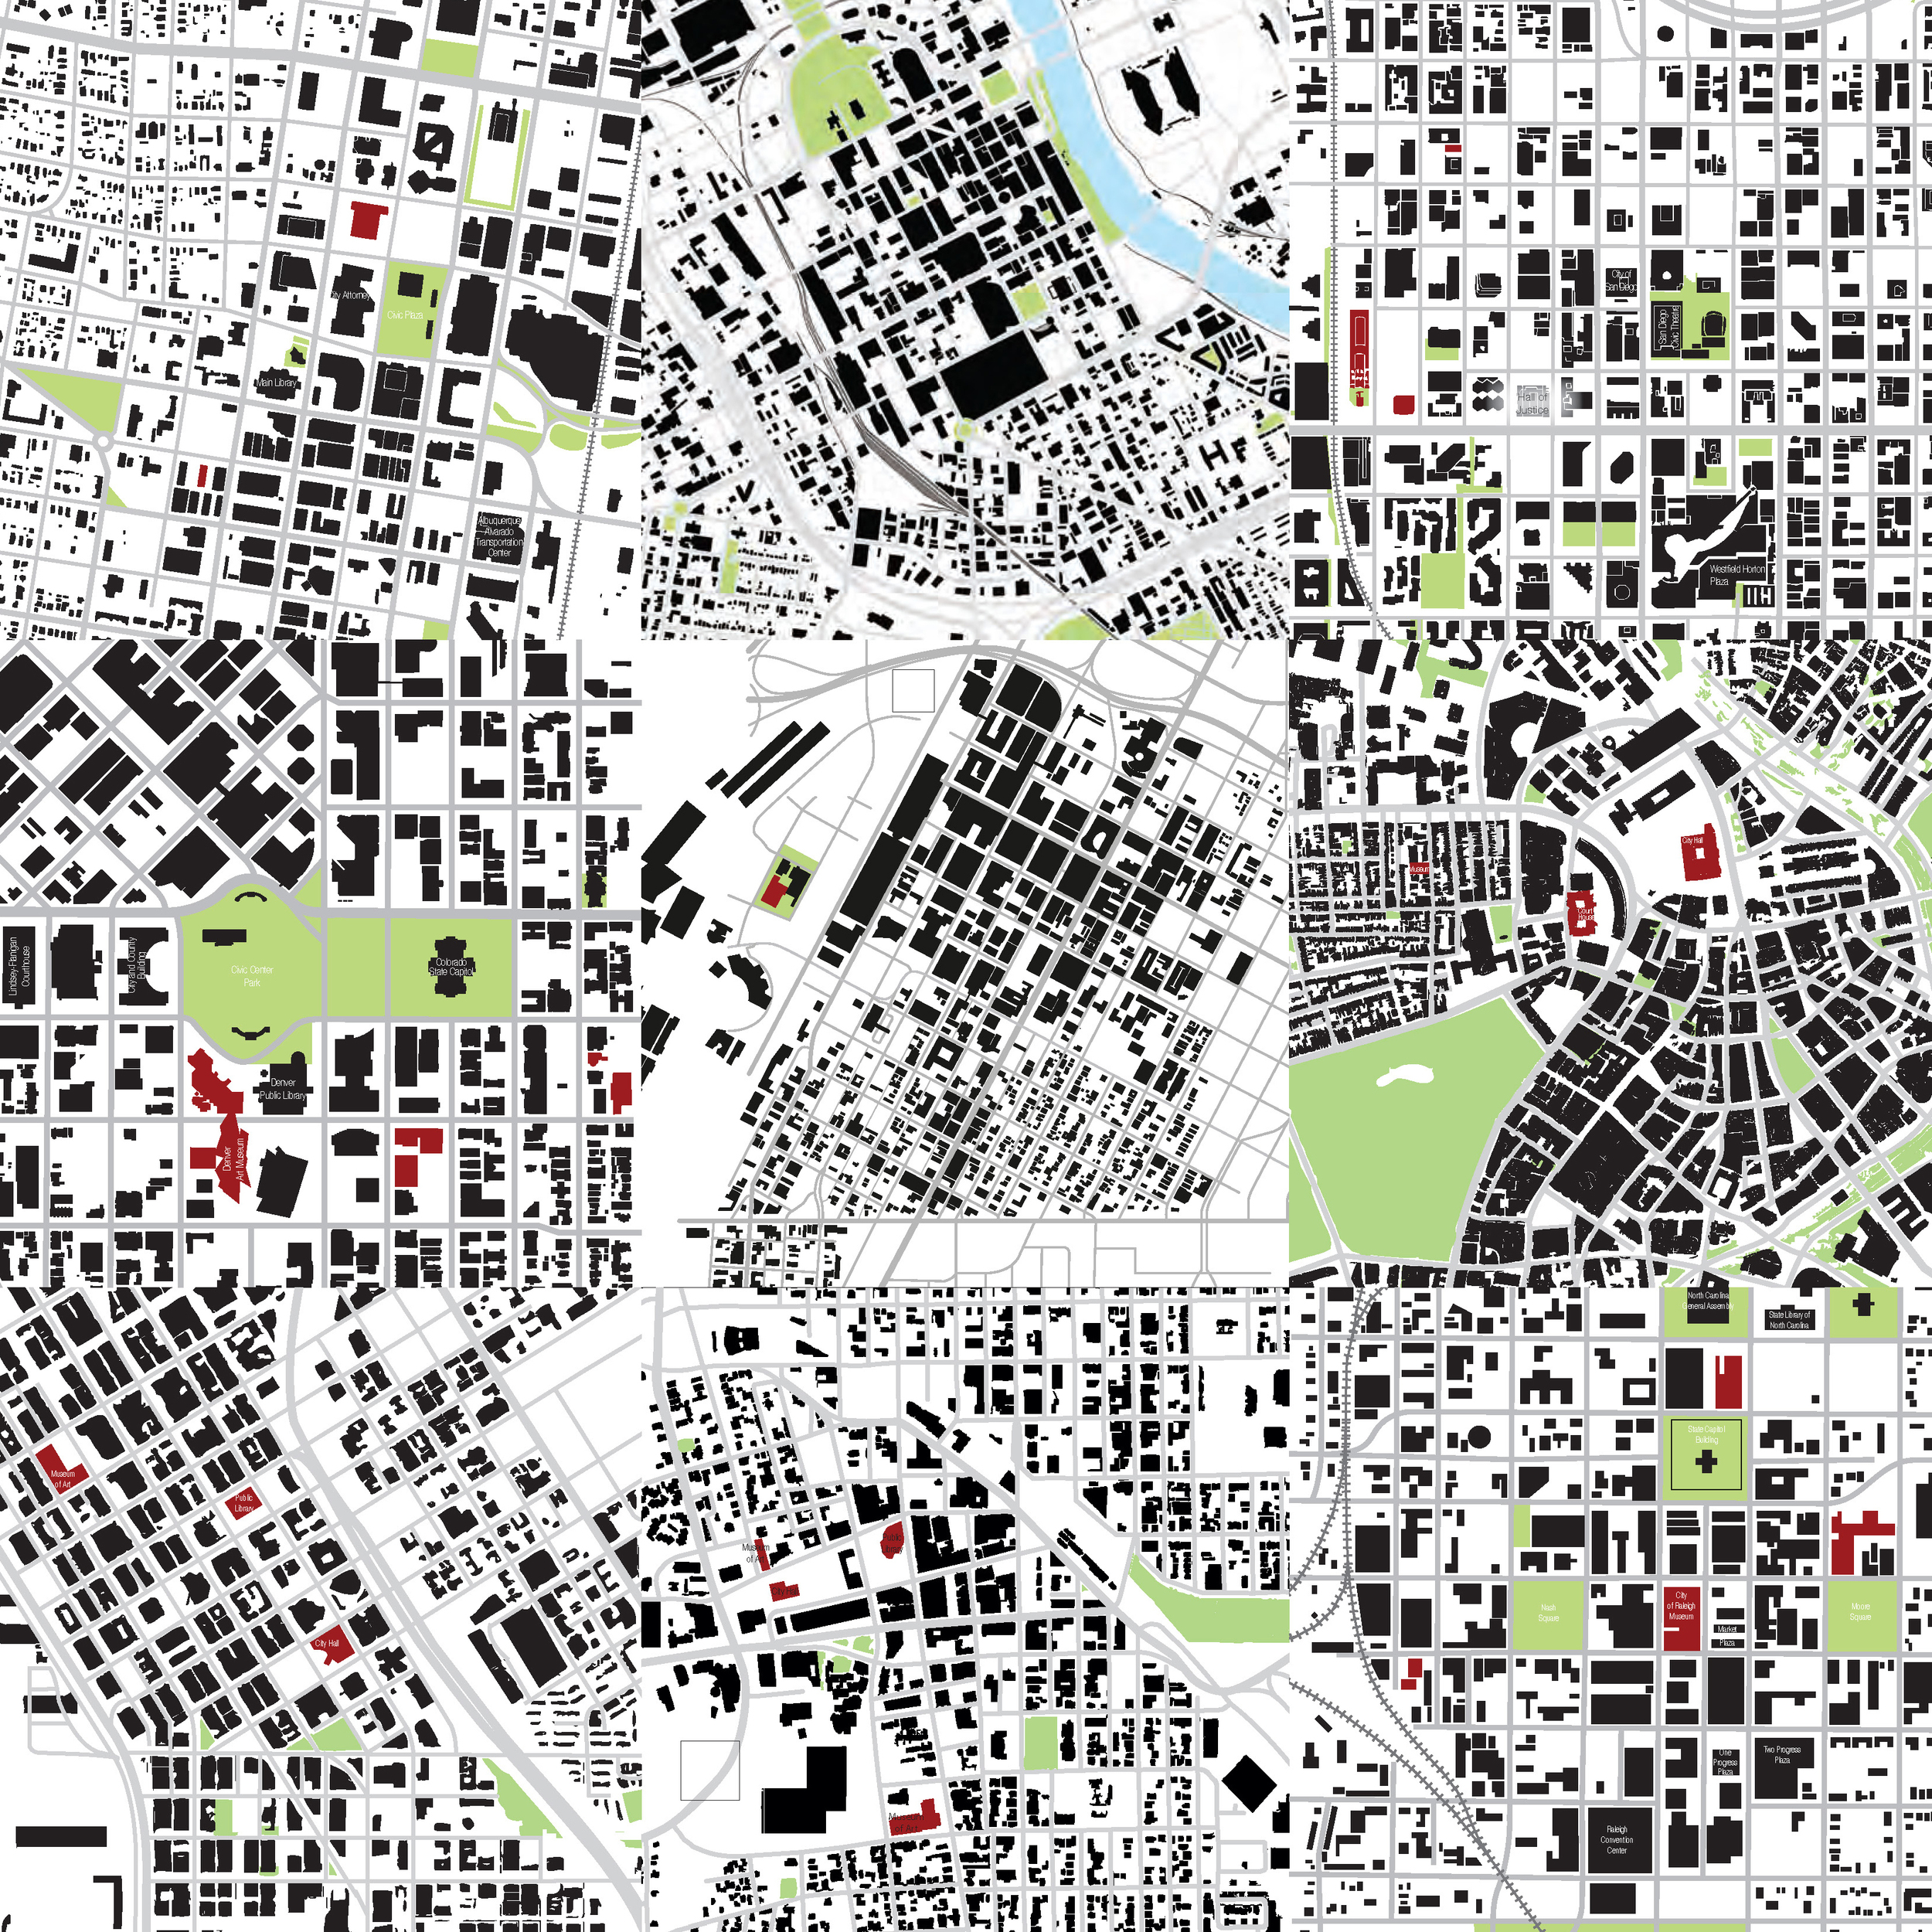 City figure-grounds, aspirational and comparative cities including Raleigh, Denver, Boston, Tuscon, Nashville, San Diego, Albuquerque.  Las Vegas in the center.  Note the relative lack of park and cultural spaces, especially in close proximity to City Hall.